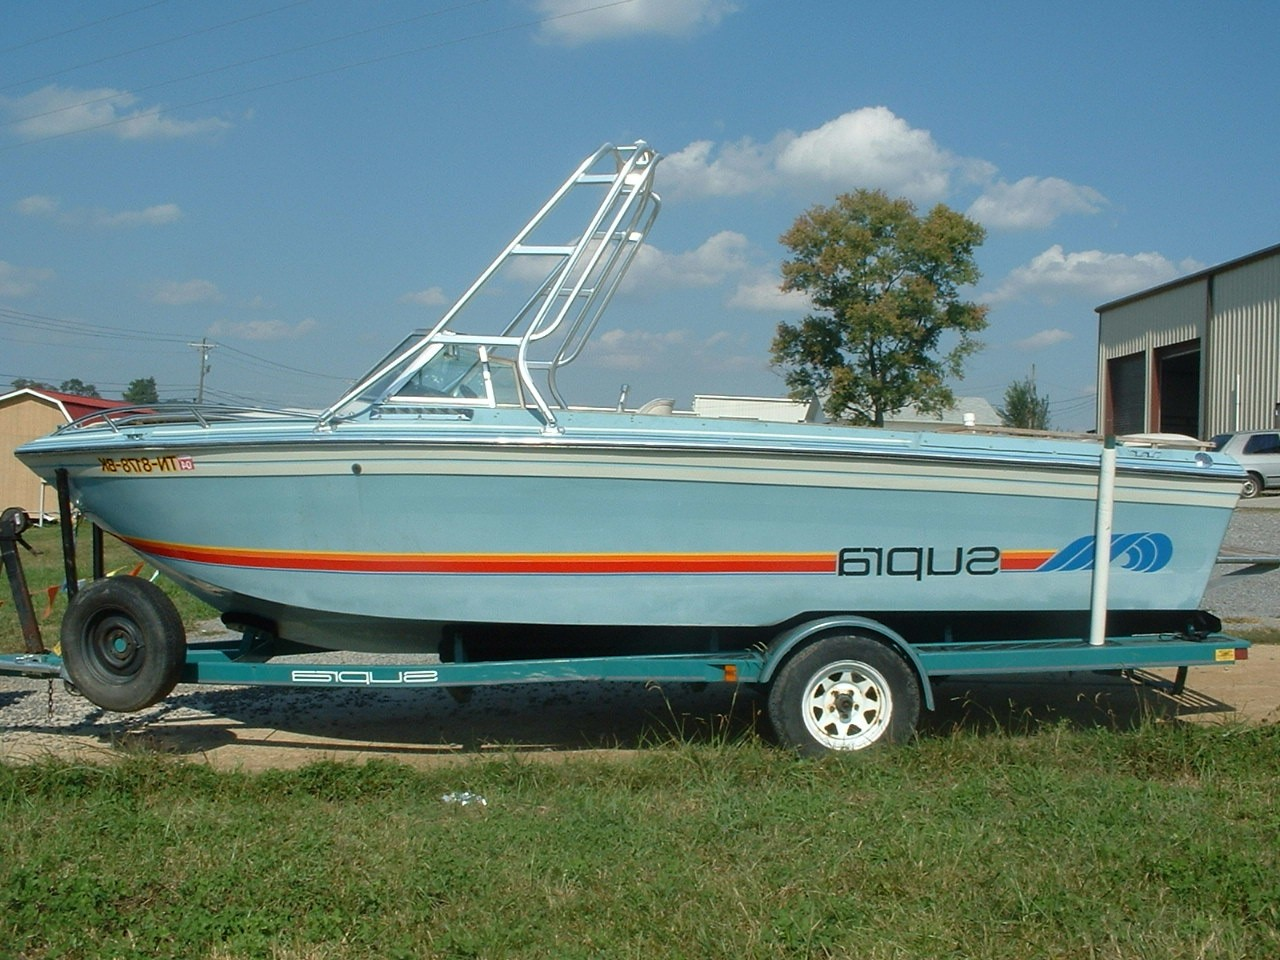 main image of 85 supra sunsport boat with new dimension tower